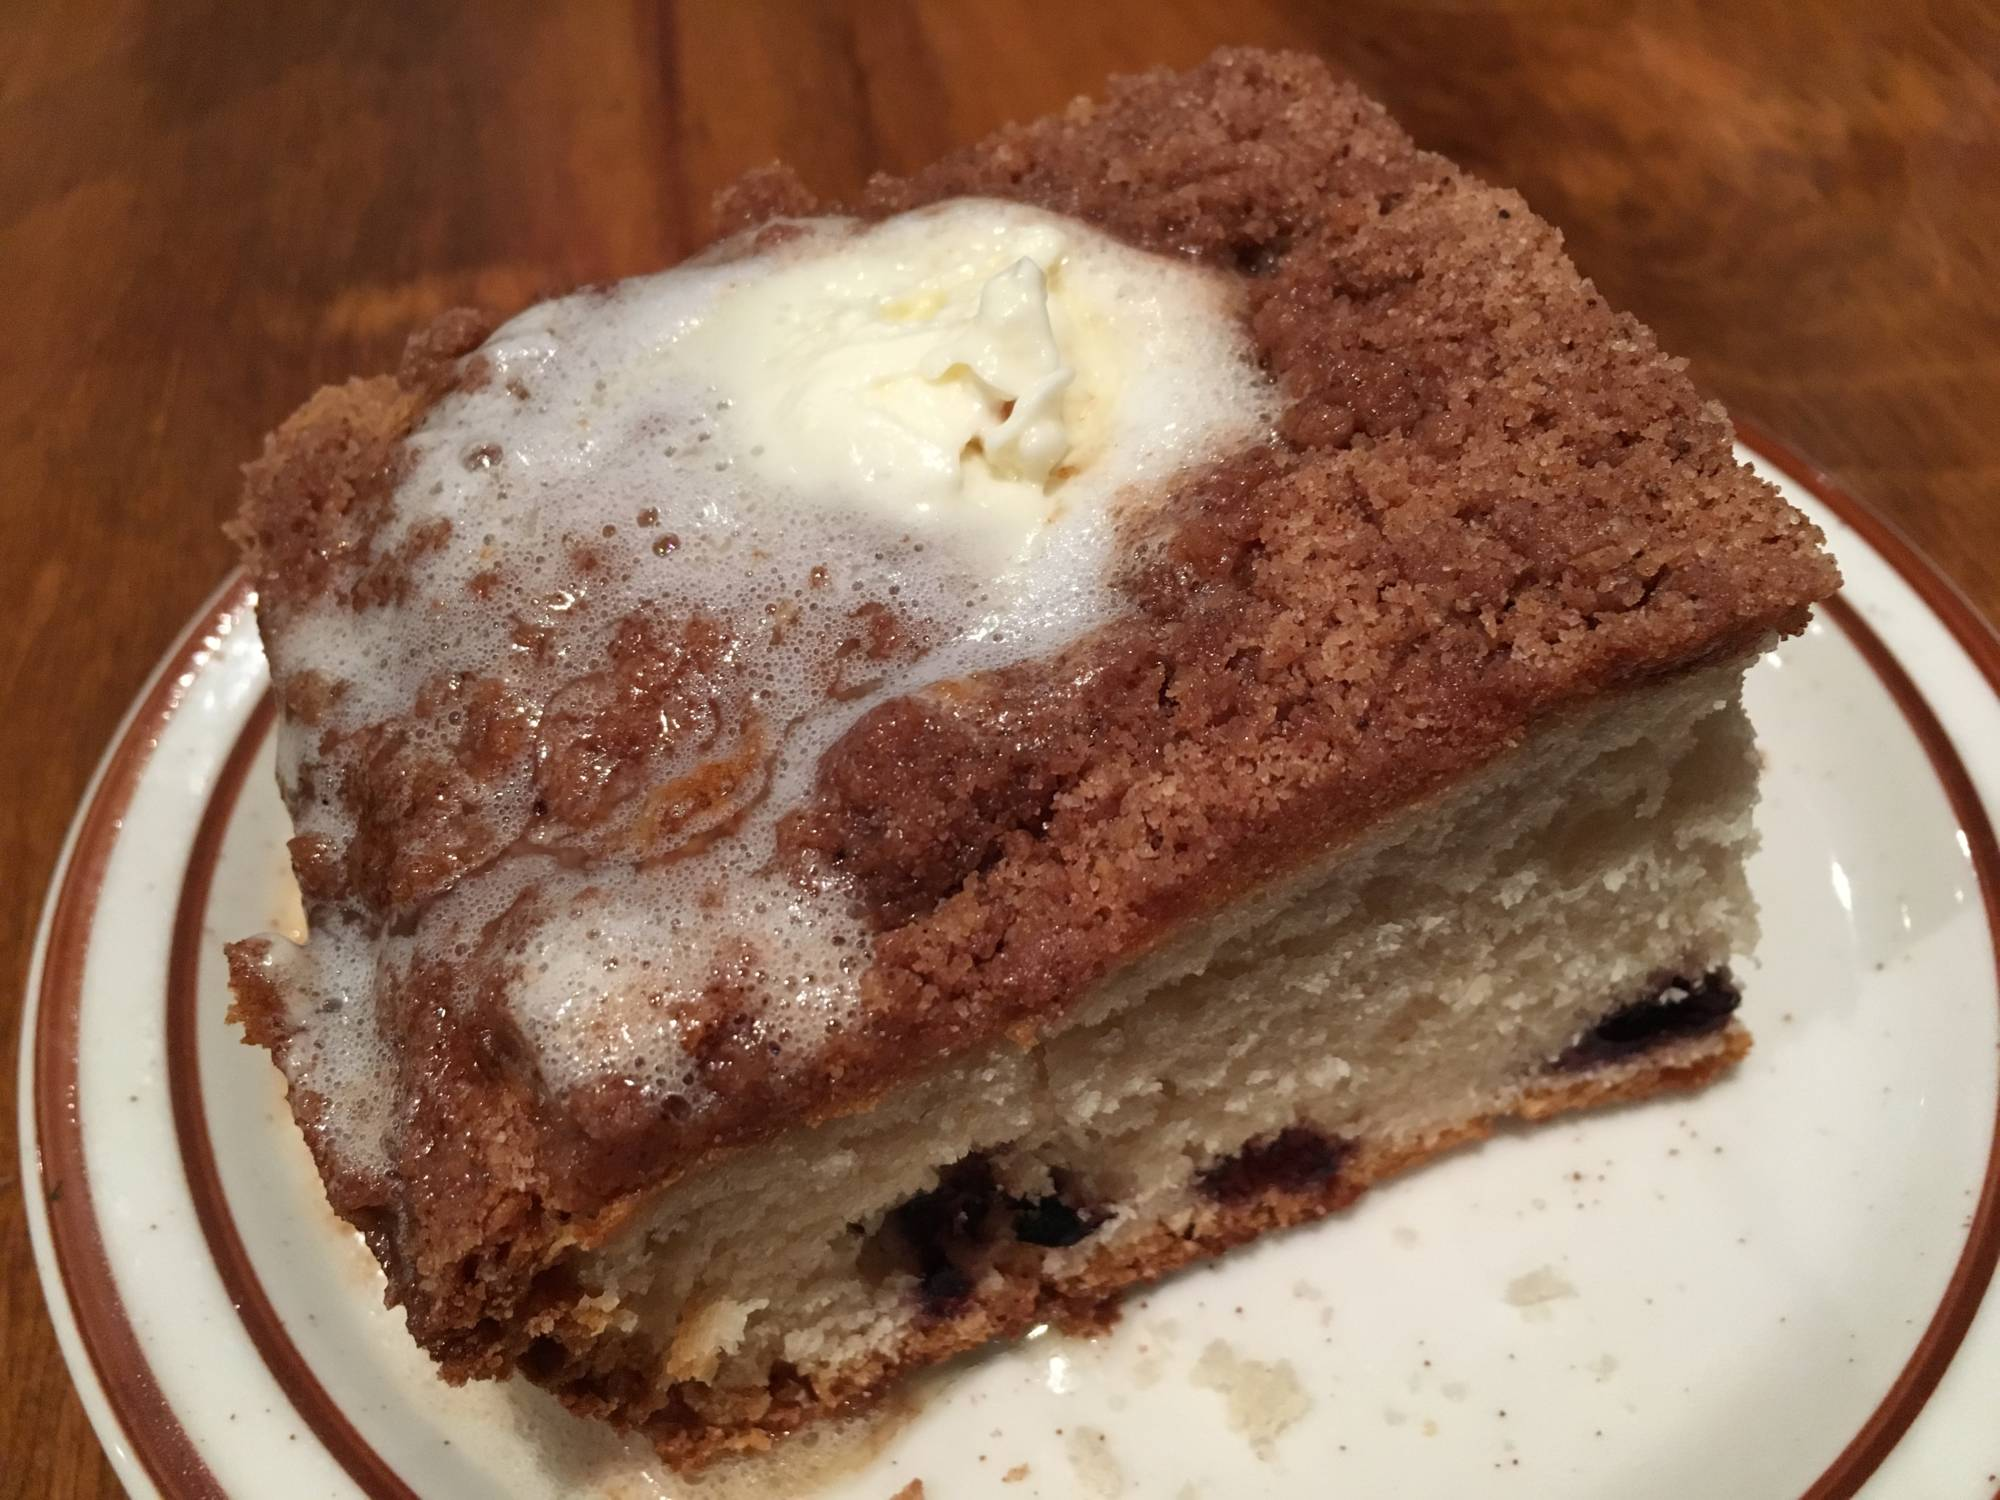 The Blueberry Coffee Cake at Hobee's in Palo Alto.